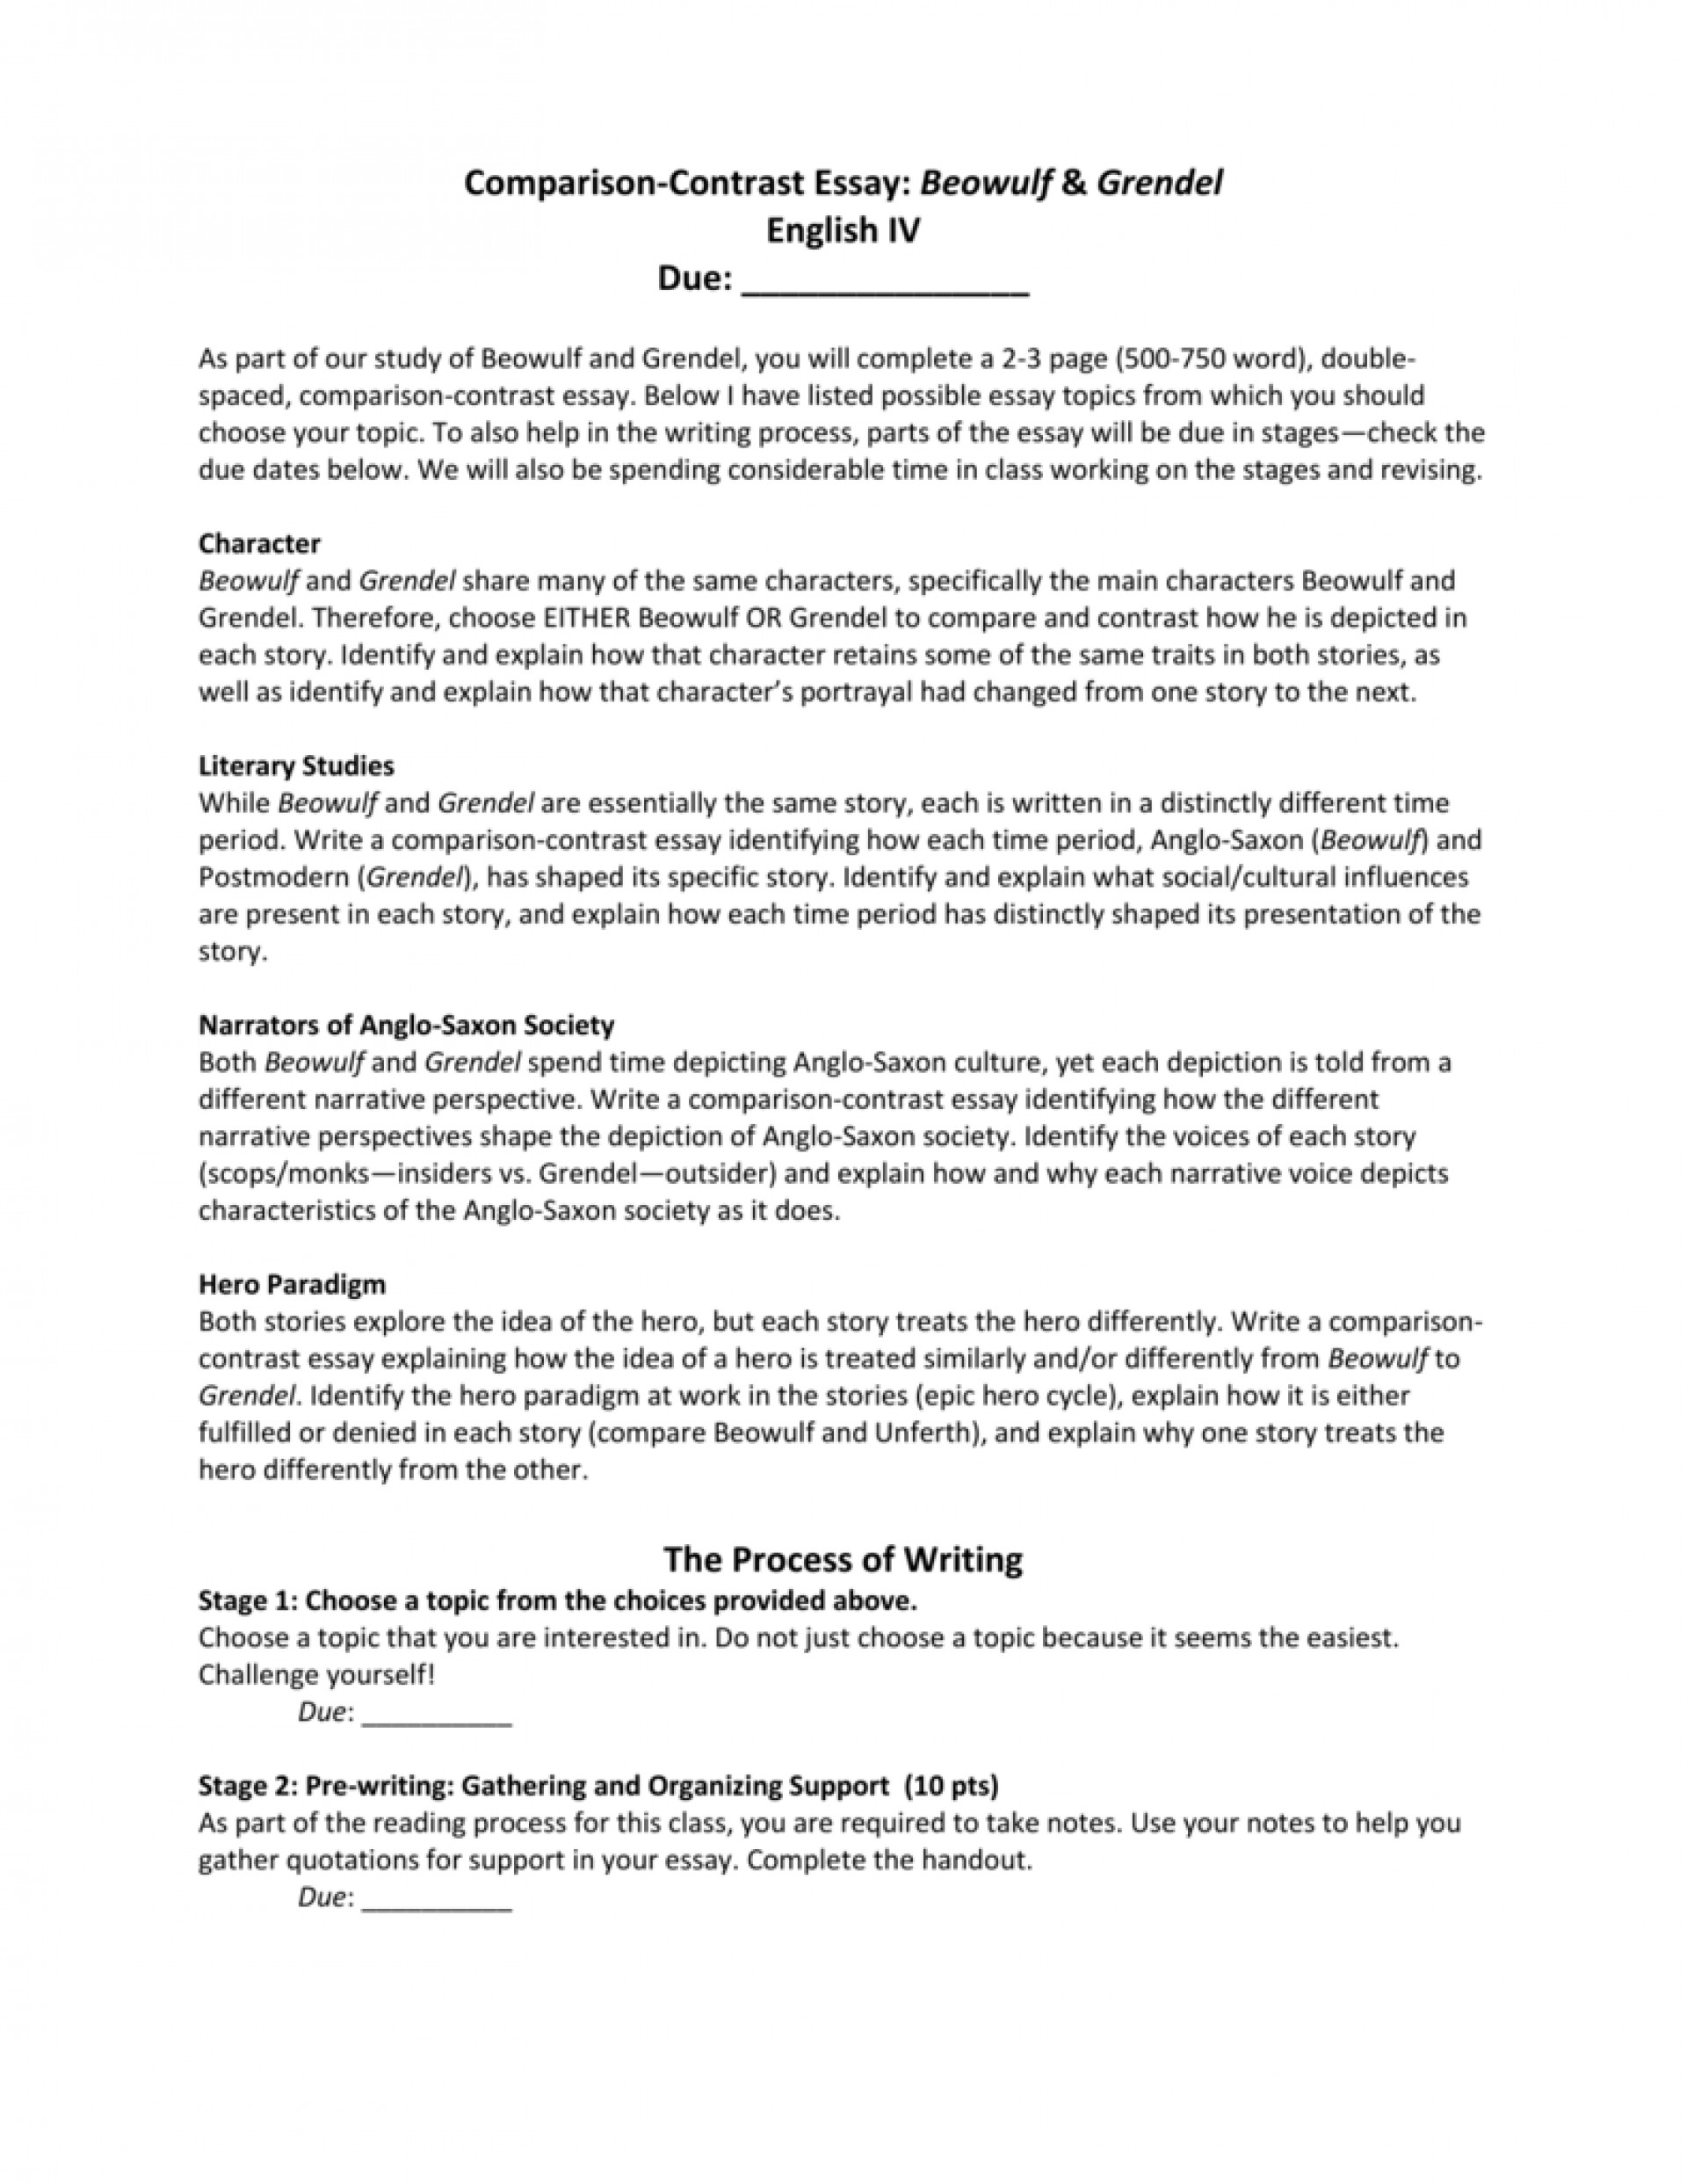 010 008061732 1 Compare And Contrast Essay Formidable A Apush Thesis Topics 2017 1920